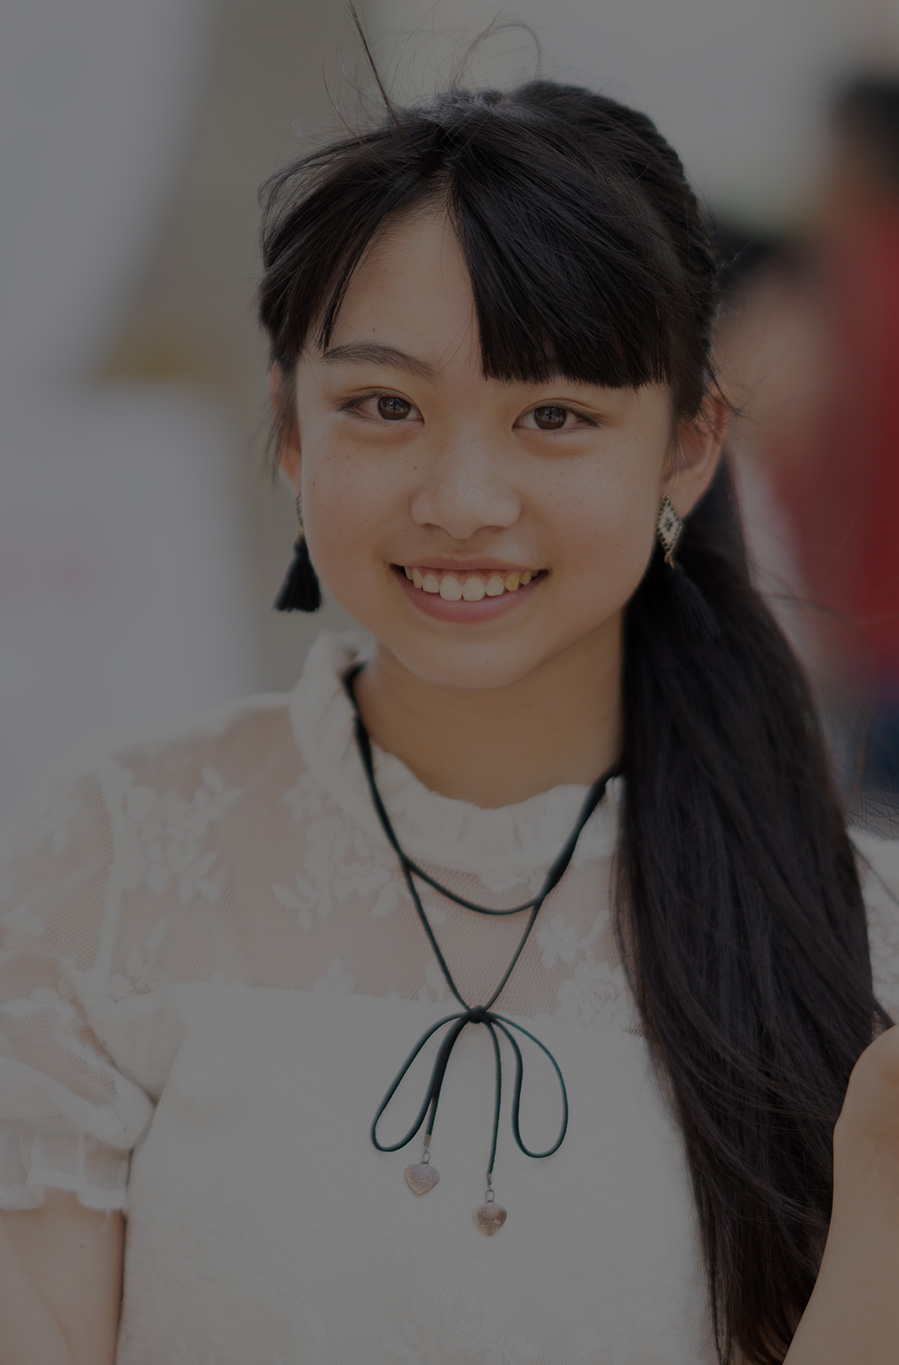 https://hinata-actors-school.com/wp/wp-content/uploads/2020/01/course2-1.jpg